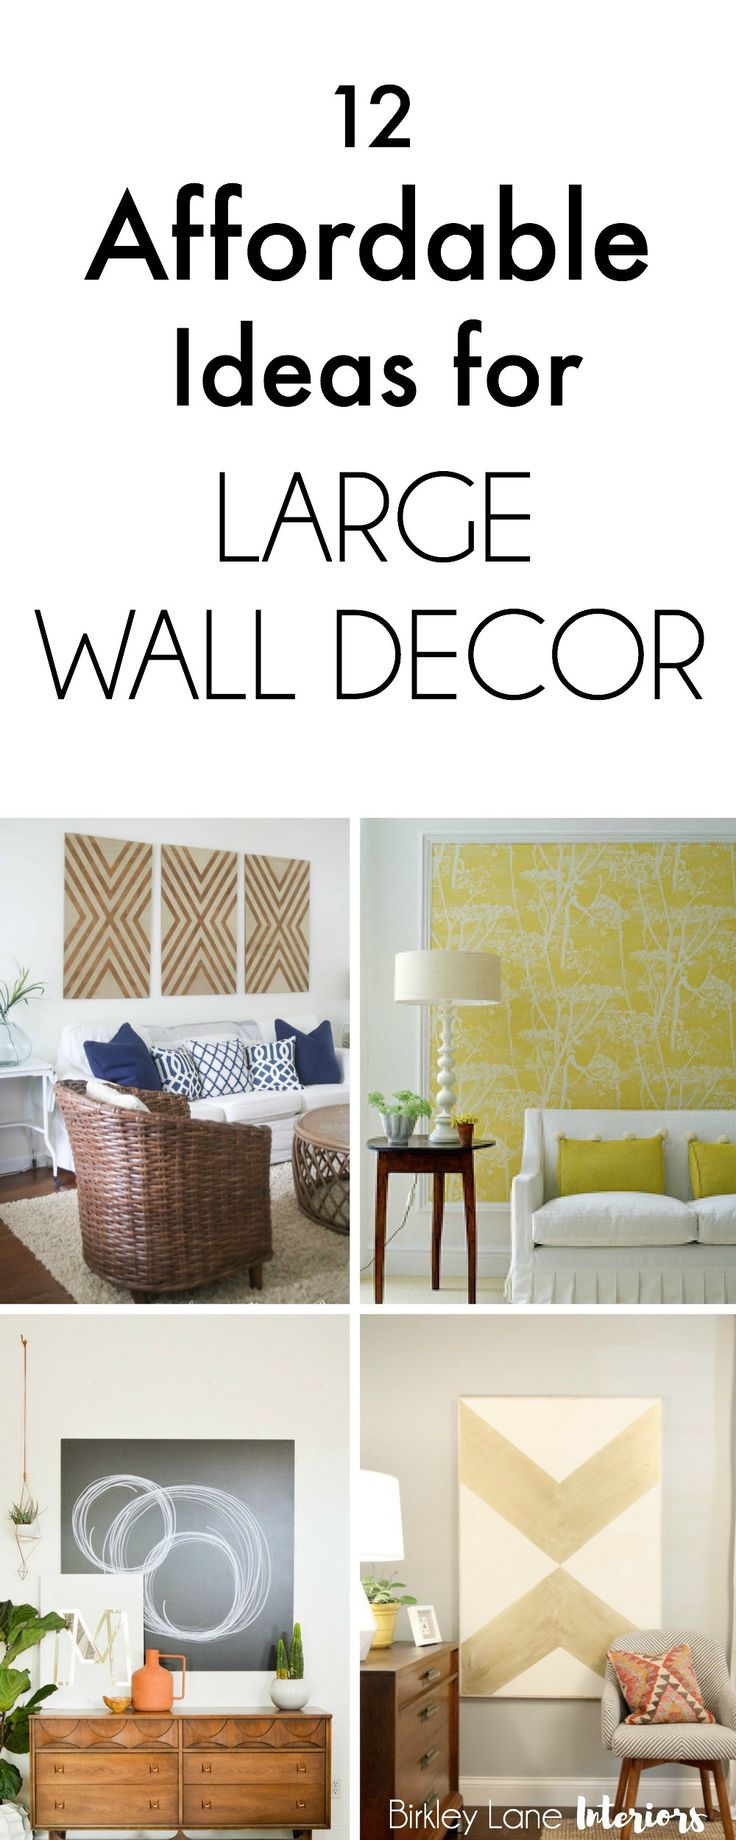 Best 25+ Decorate large walls ideas on Pinterest | Decorating ...